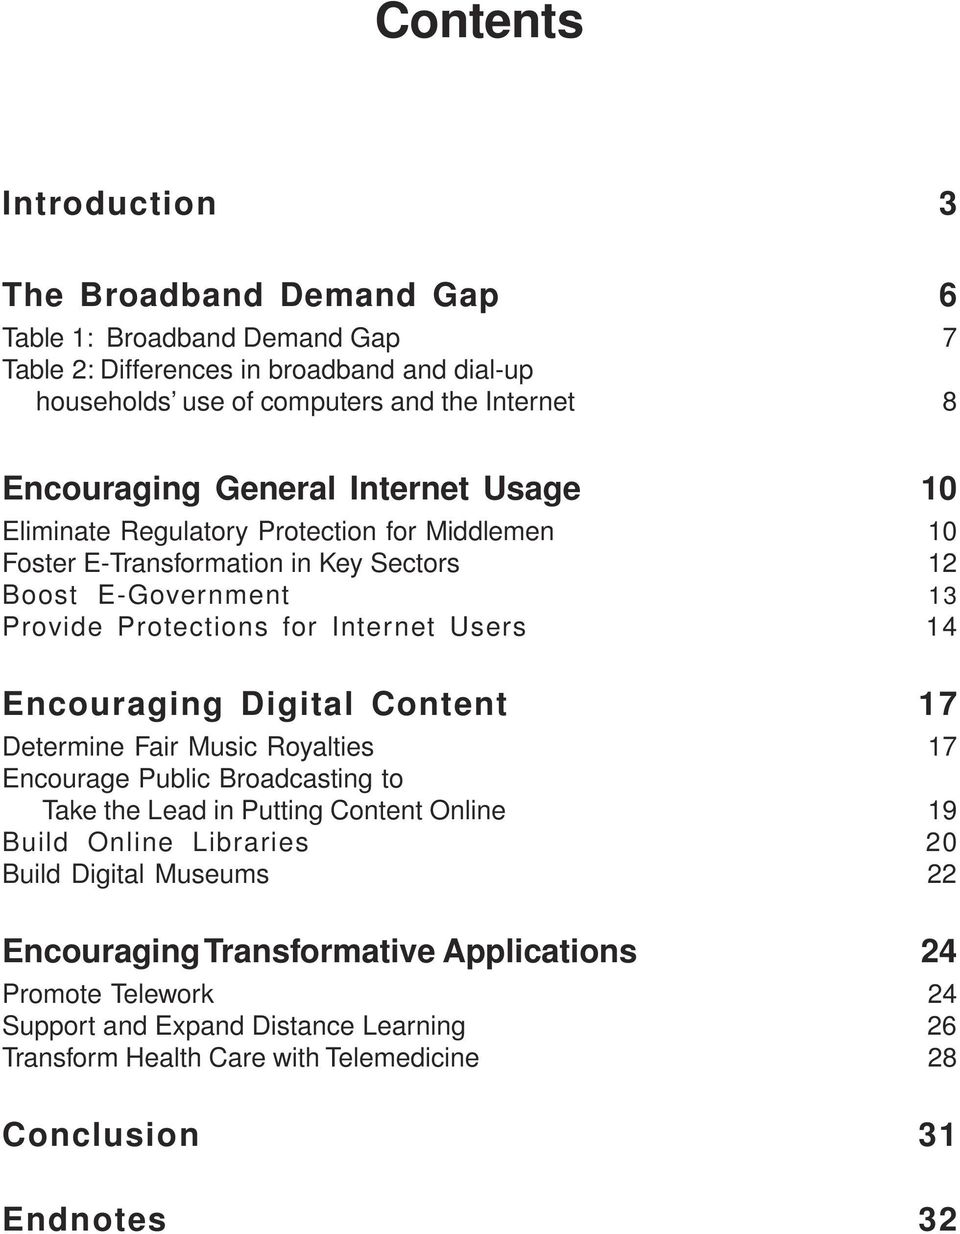 Internet Users 14 Encouraging Digital Content 17 Determine Fair Music Royalties 17 Encourage Public Broadcasting to Take the Lead in Putting Content Online 19 Build Online Libraries